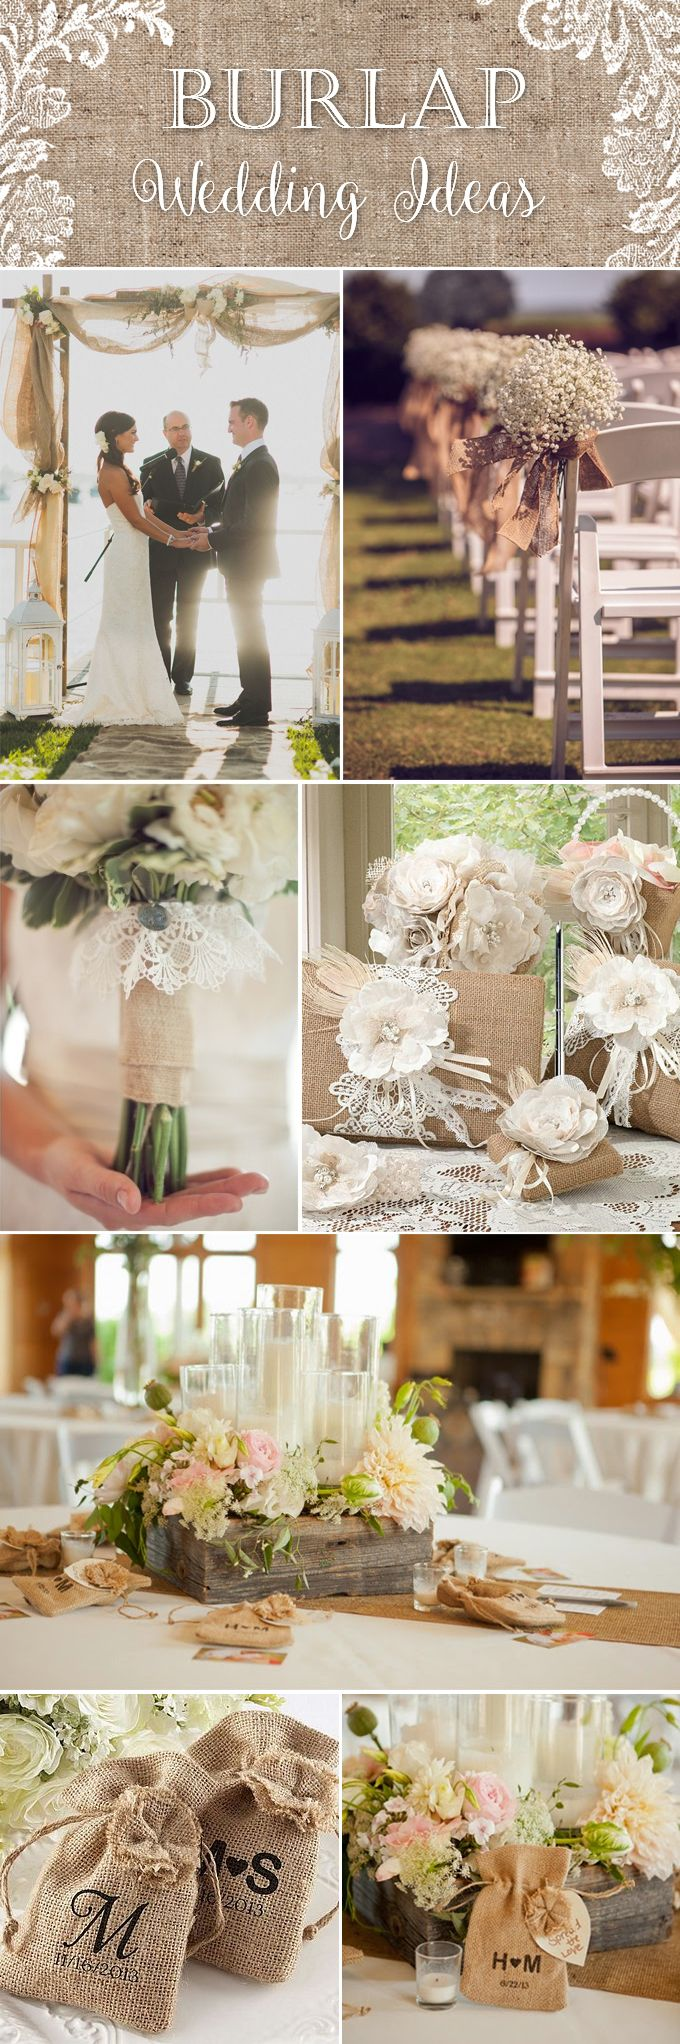 Burlap-wedding-decorations-and-ideas